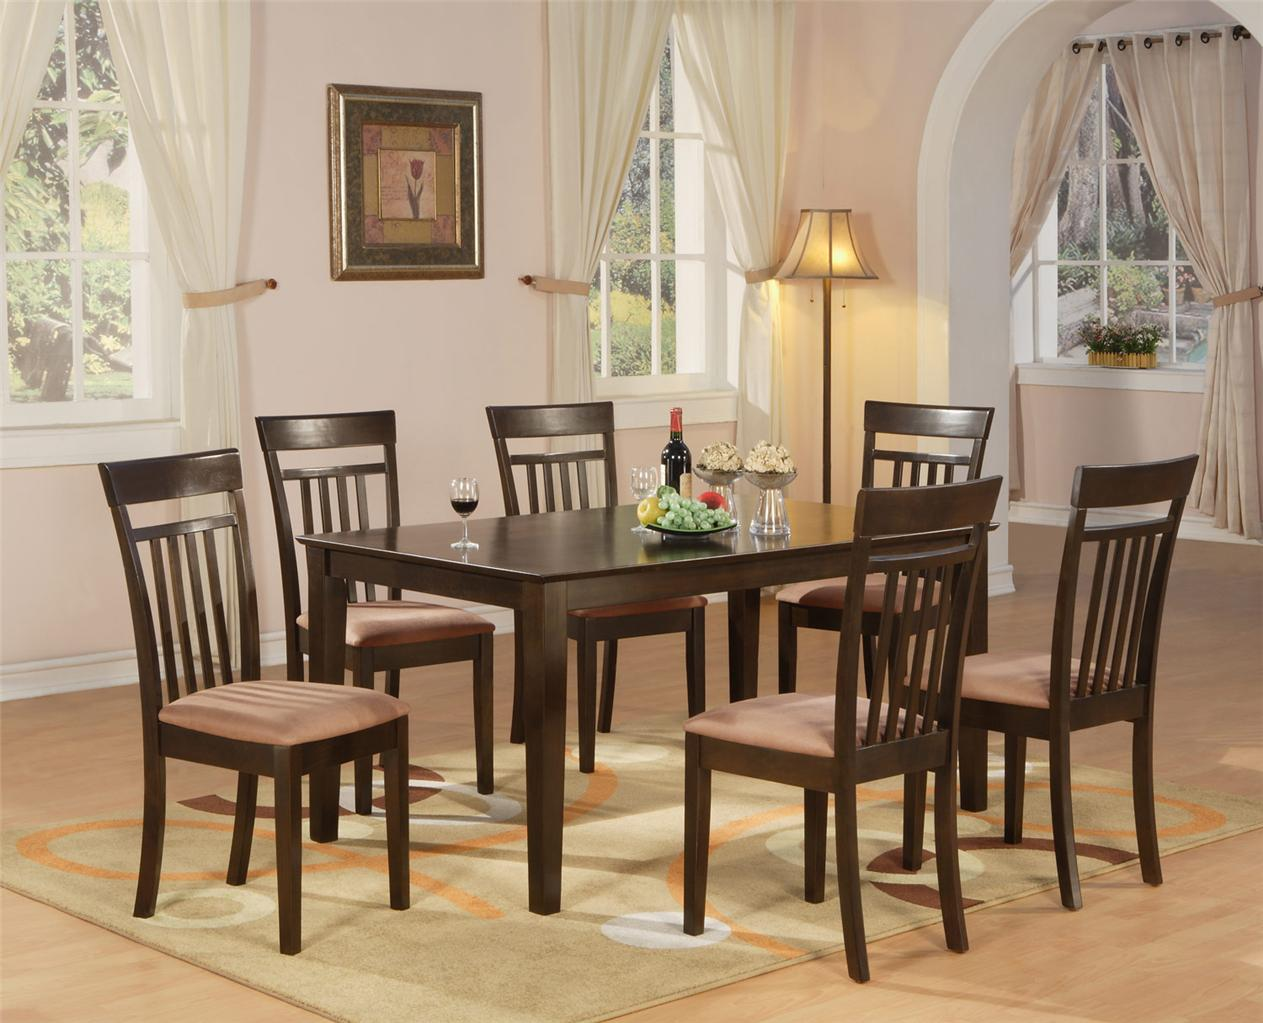 Details About 7 PC DINING ROOM DINETTE KITCHEN SET TABLE AND 6 CHAIRS